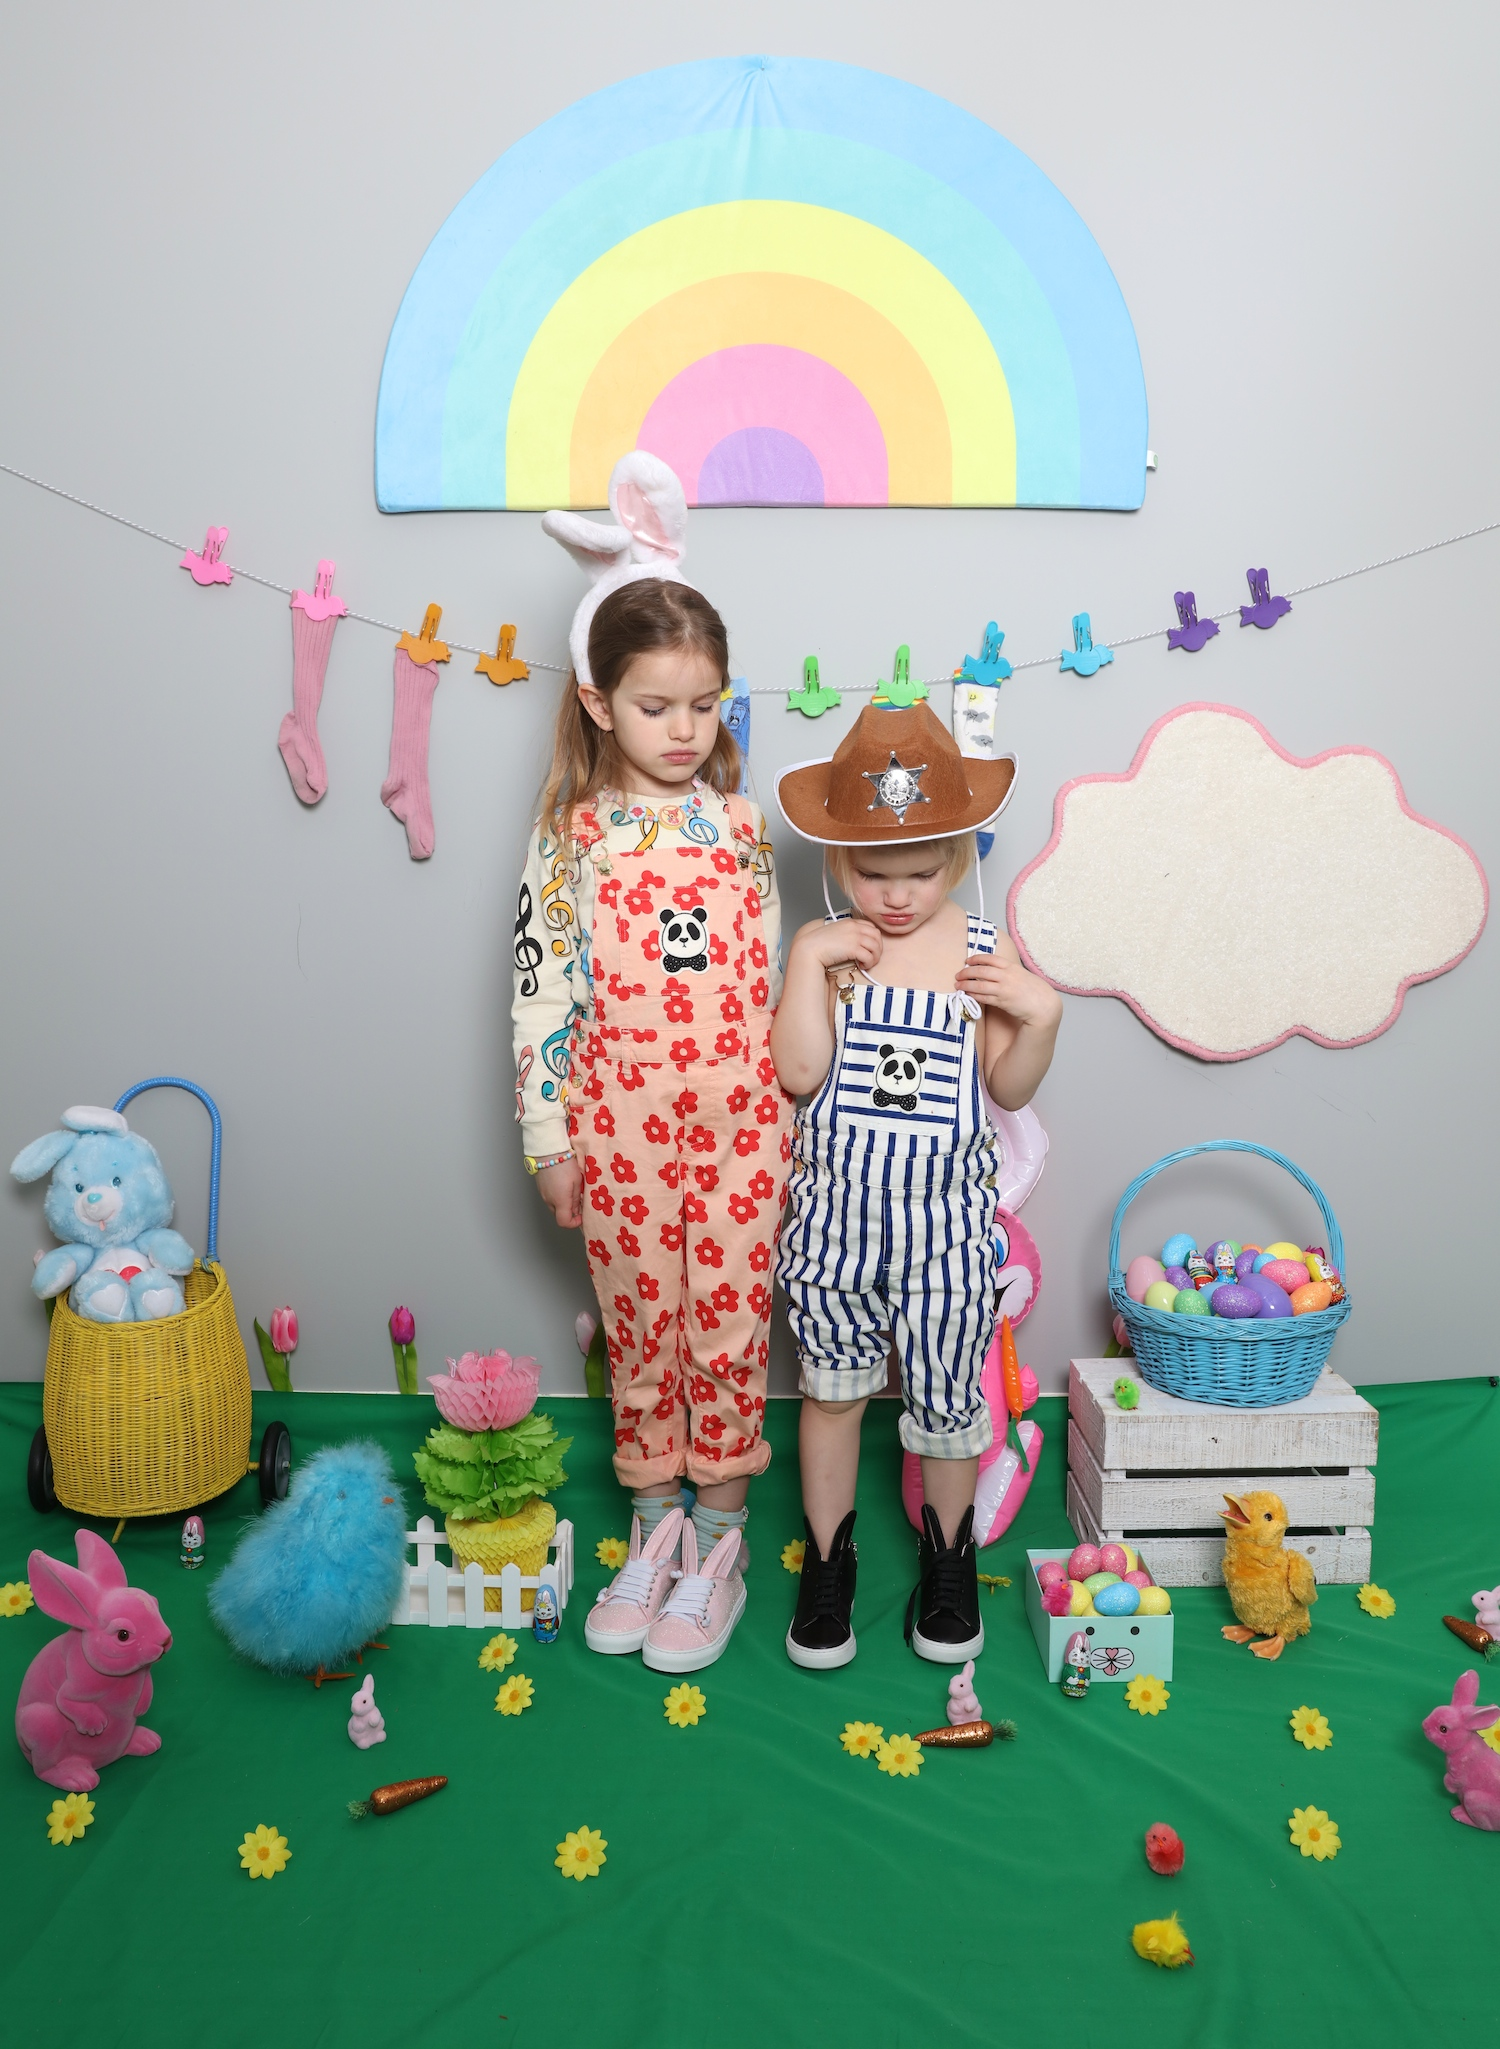 minna_parikka_children_salon_mini_rodini_dungarees_bunny_easter